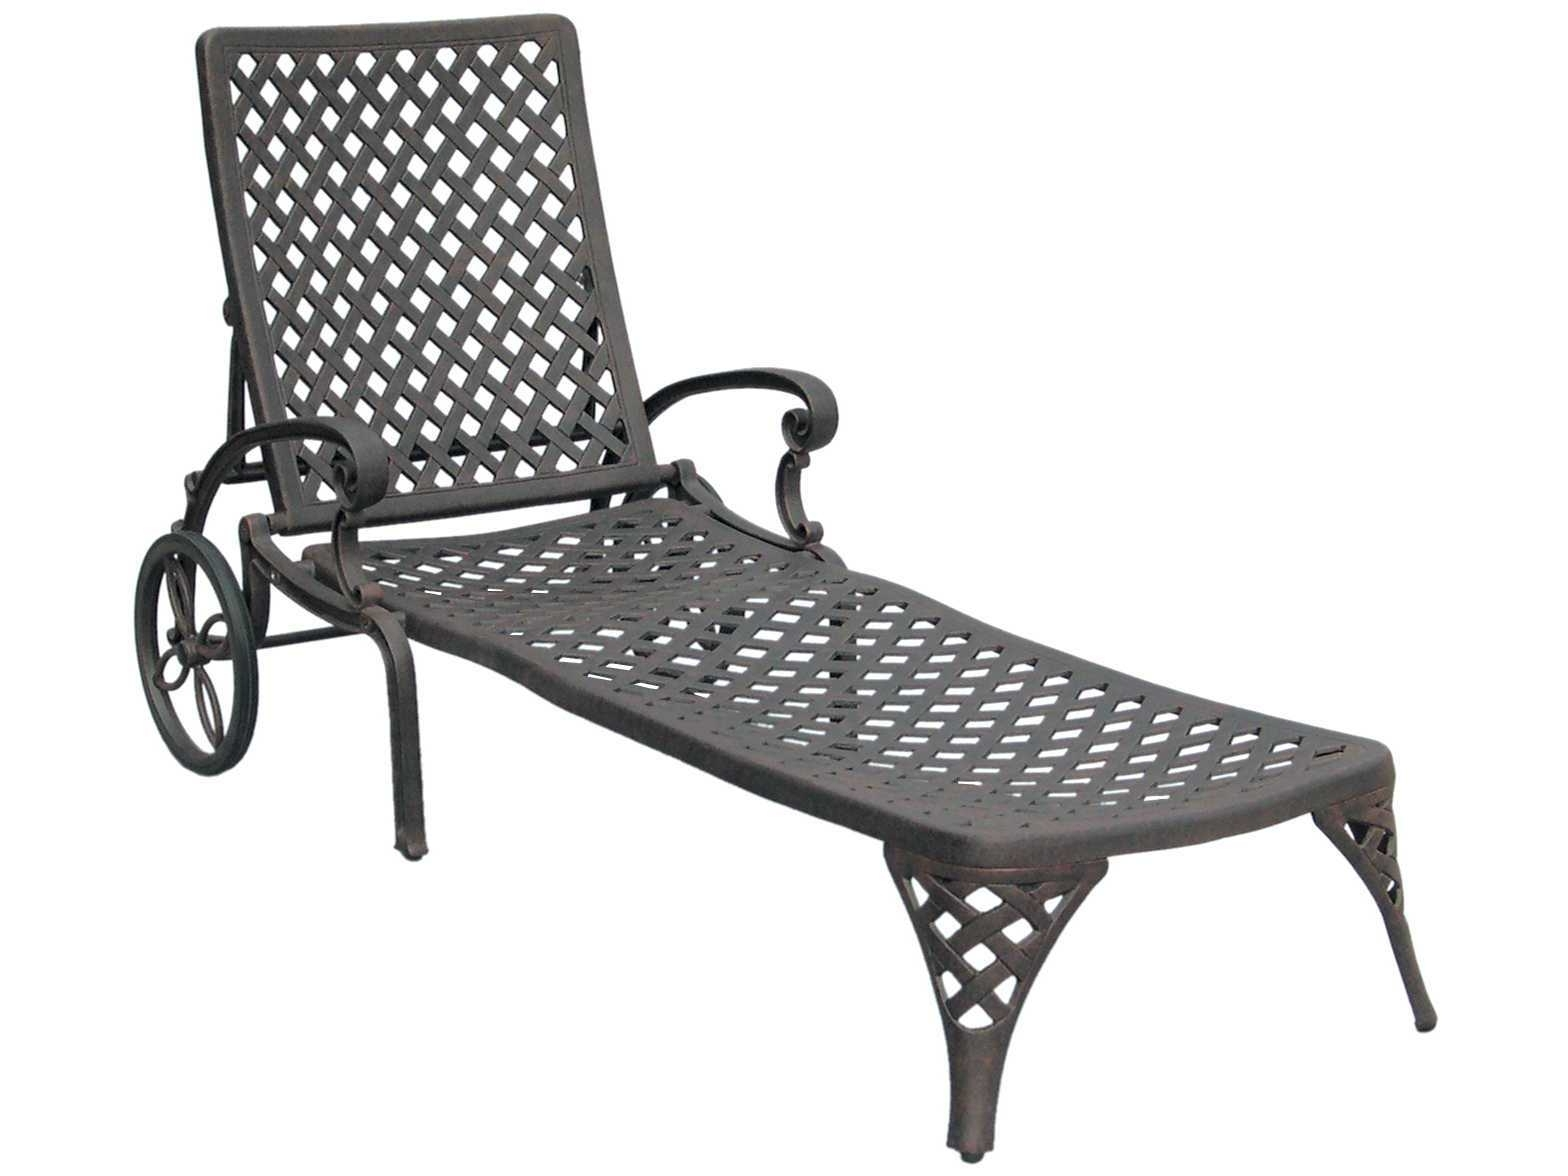 Cast Aluminum Chaise Lounges With Wheels Pertaining To 2017 Darlee Outdoor Living Standard Nassau Cast Aluminum Antique Bronze (View 6 of 15)